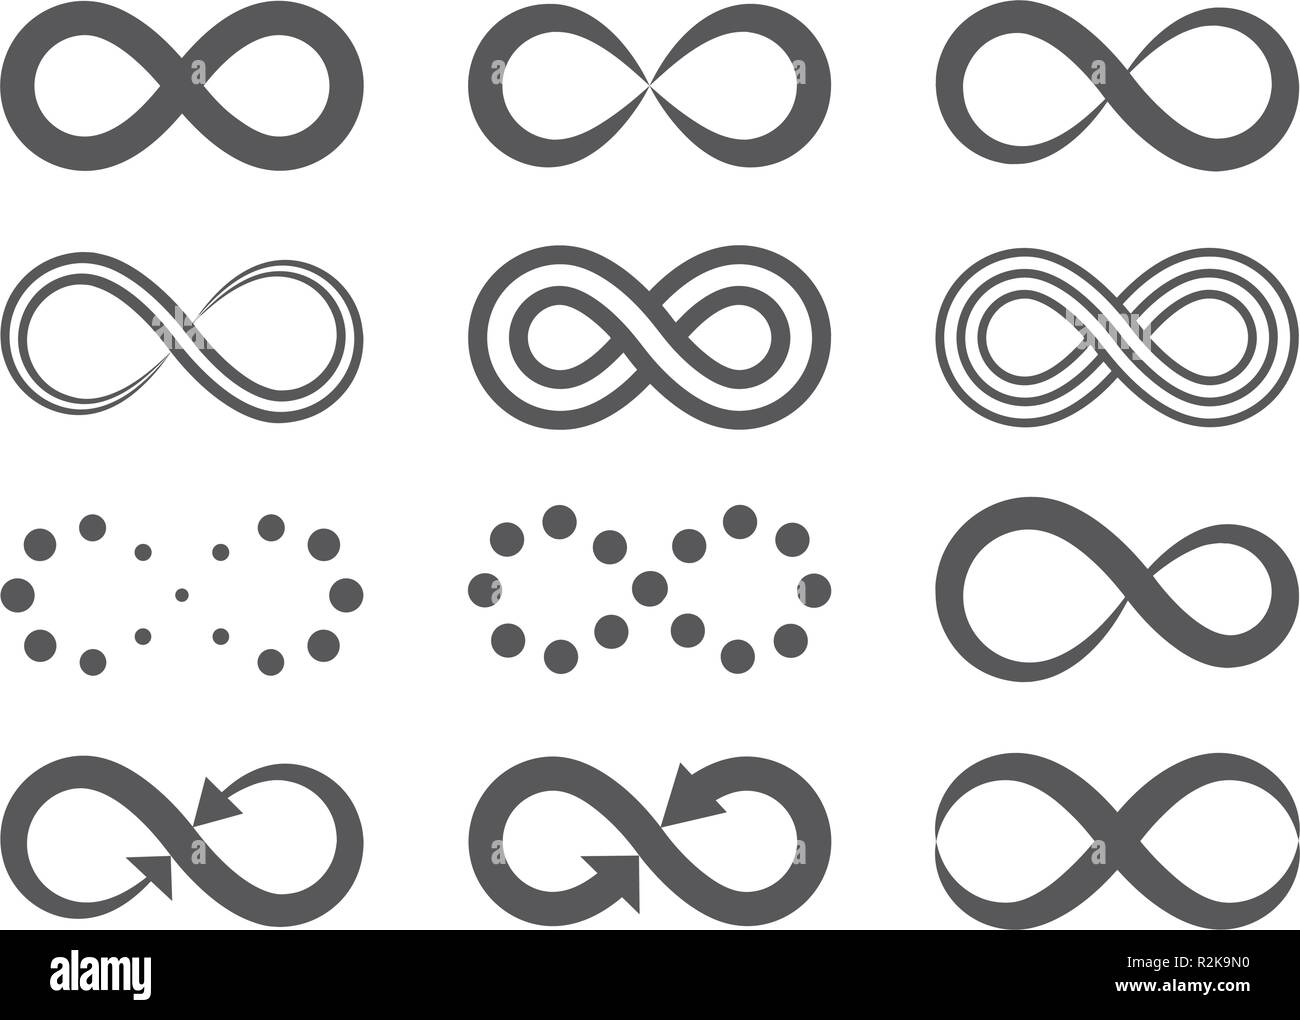 Black infinity symbols. Repetition icons and signs illustration on white background. - Stock Image